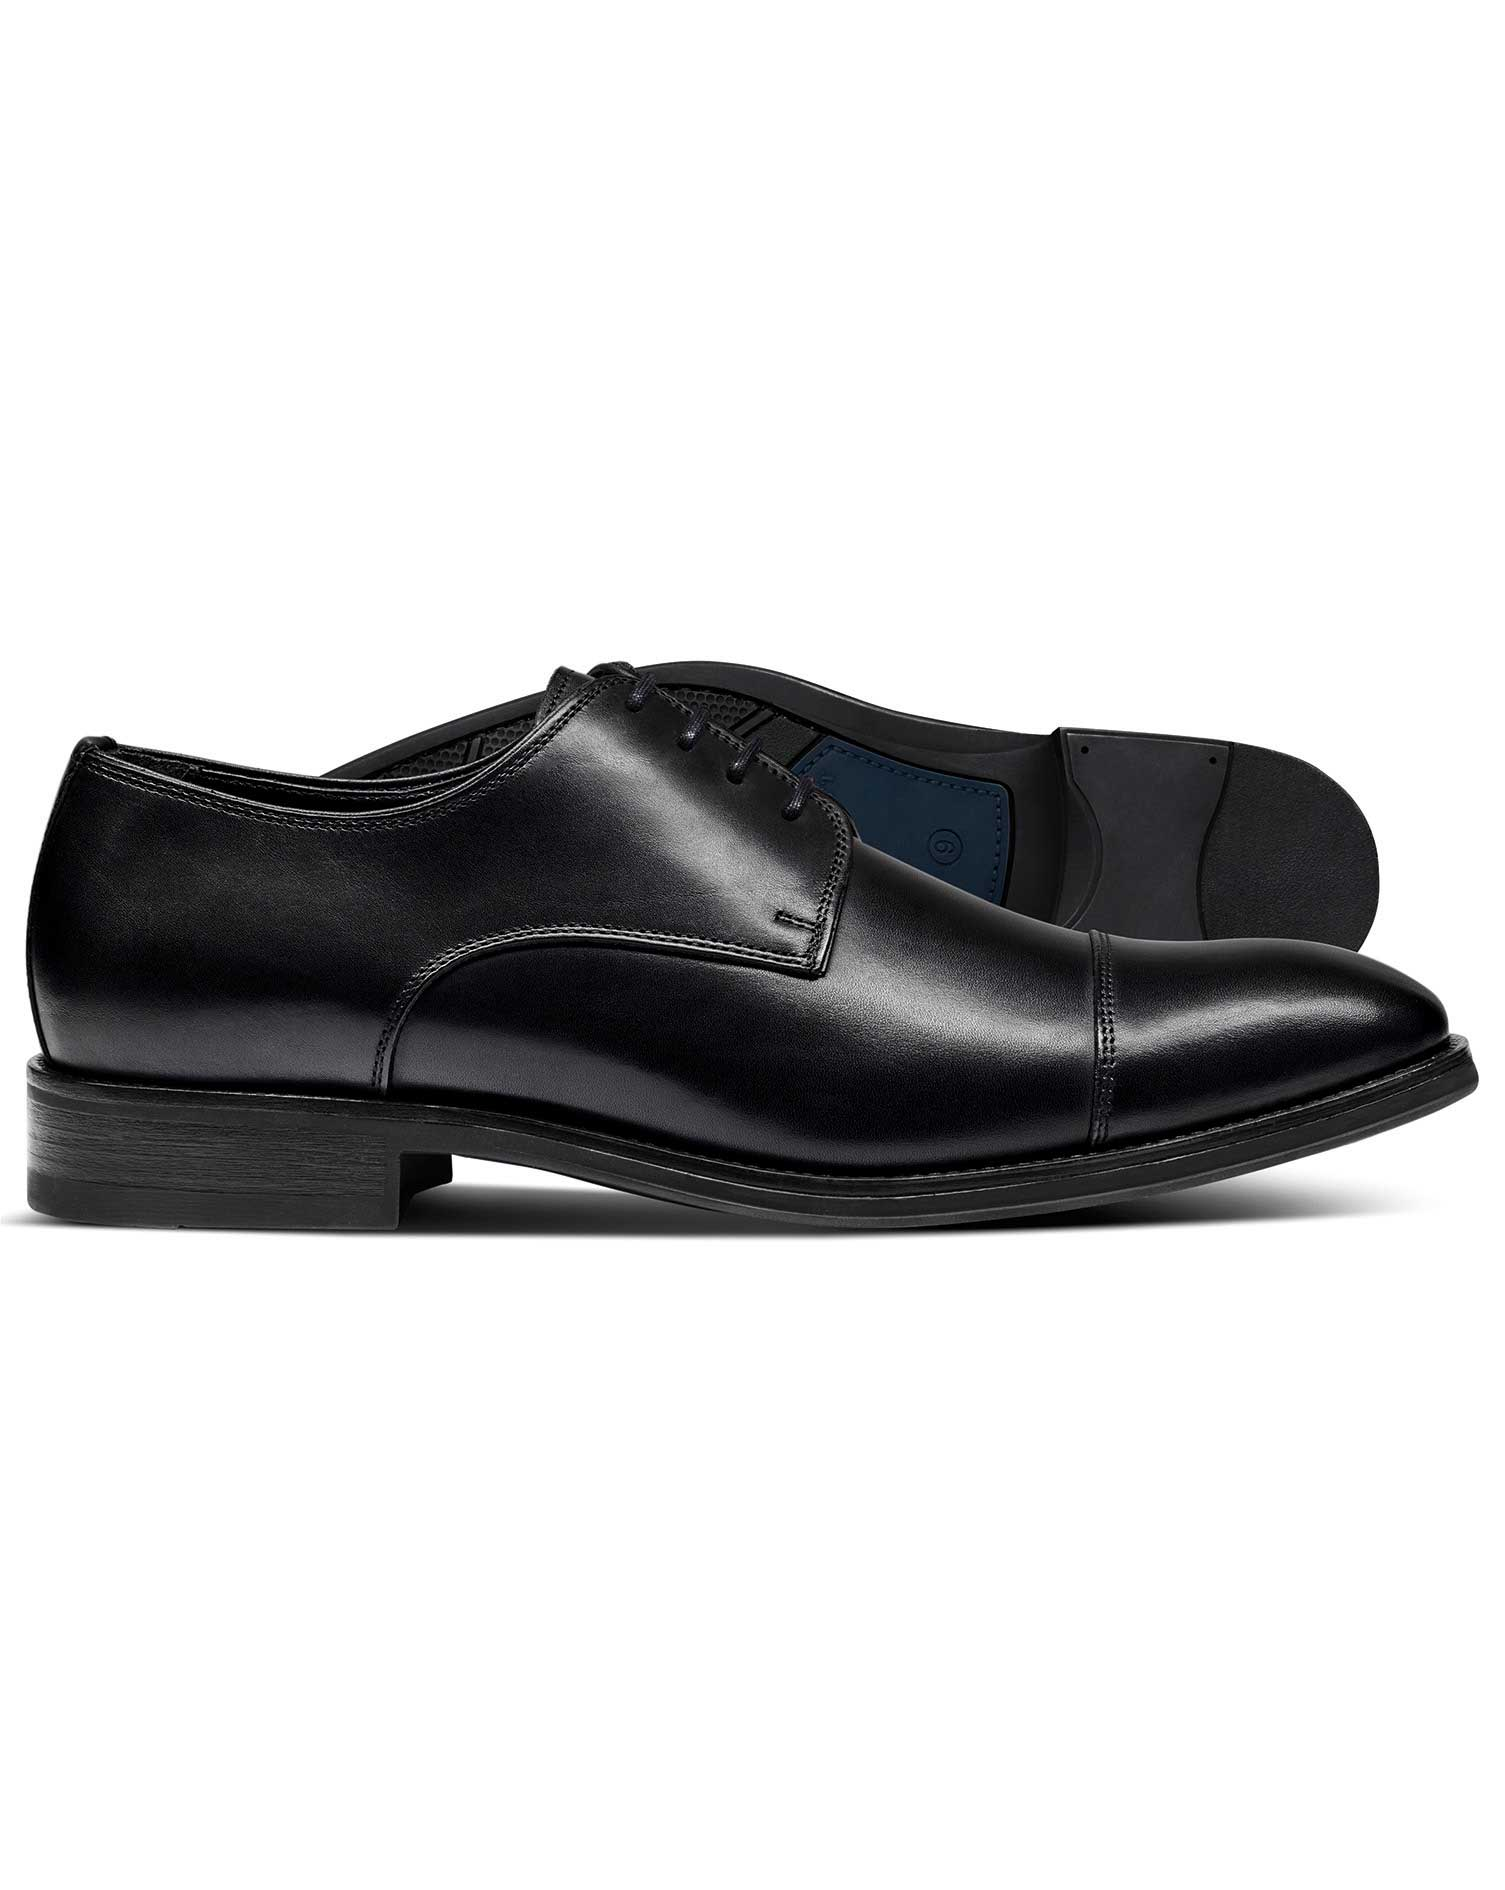 Black Performance Derby Toe Cap Shoes Size 6.5 R by Charles Tyrwhitt